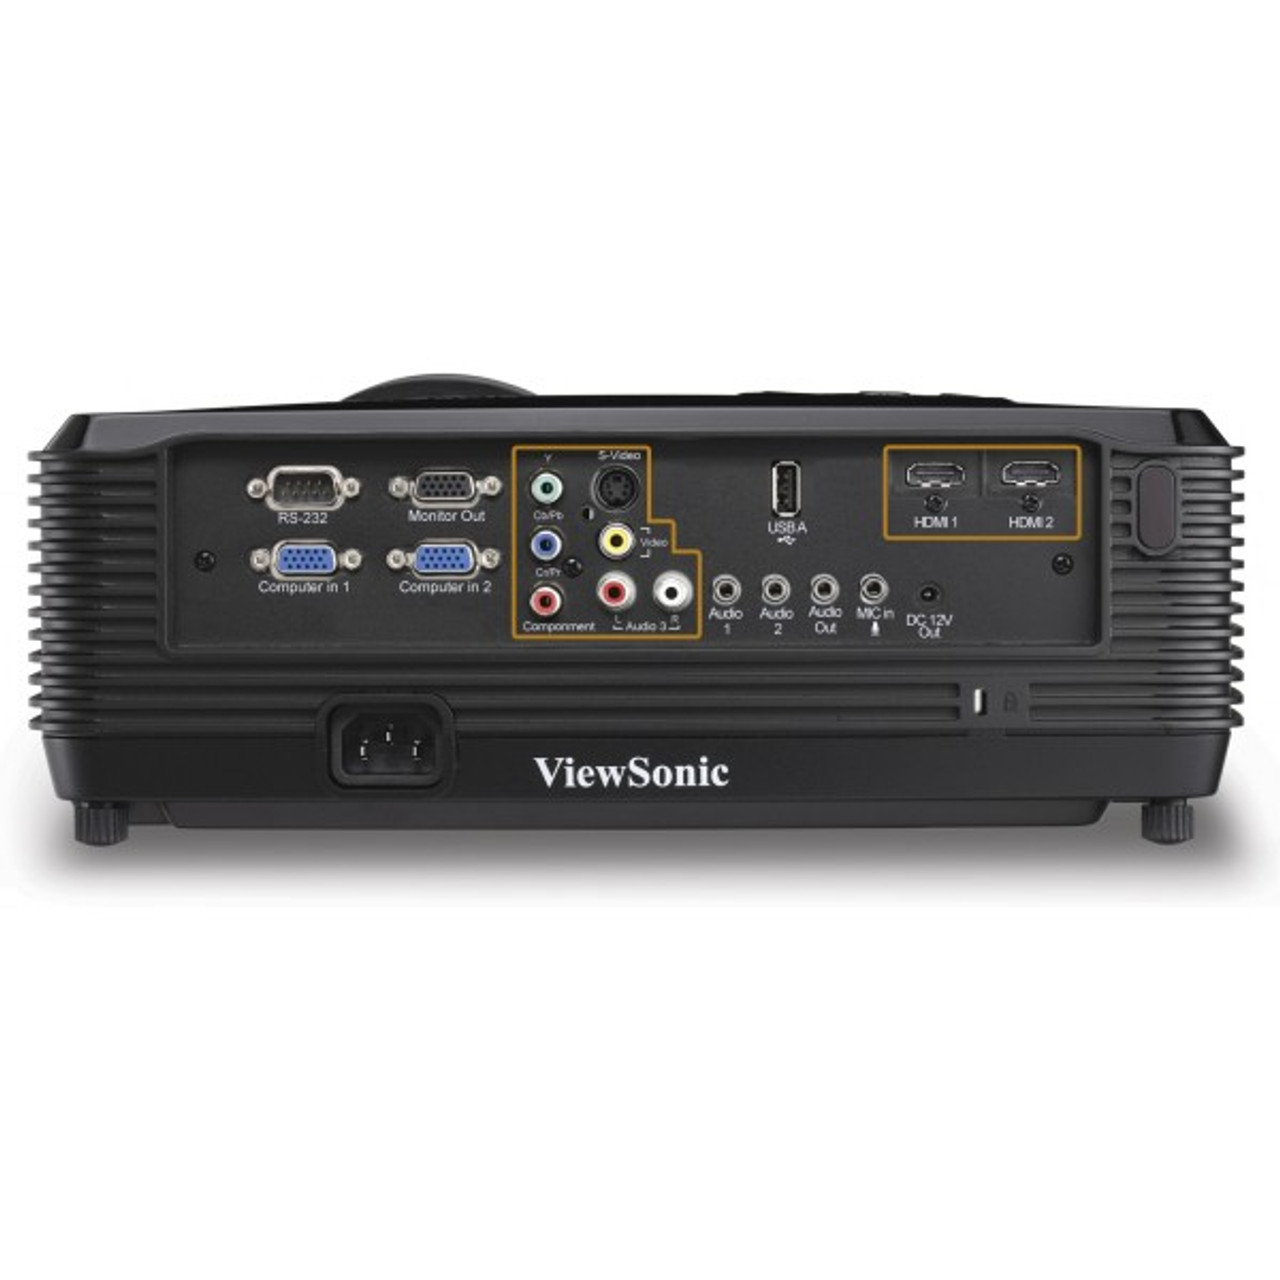 ViewSonic PRO8200-S 1080P Home Cinema DLP Projector - Certified Refurbished